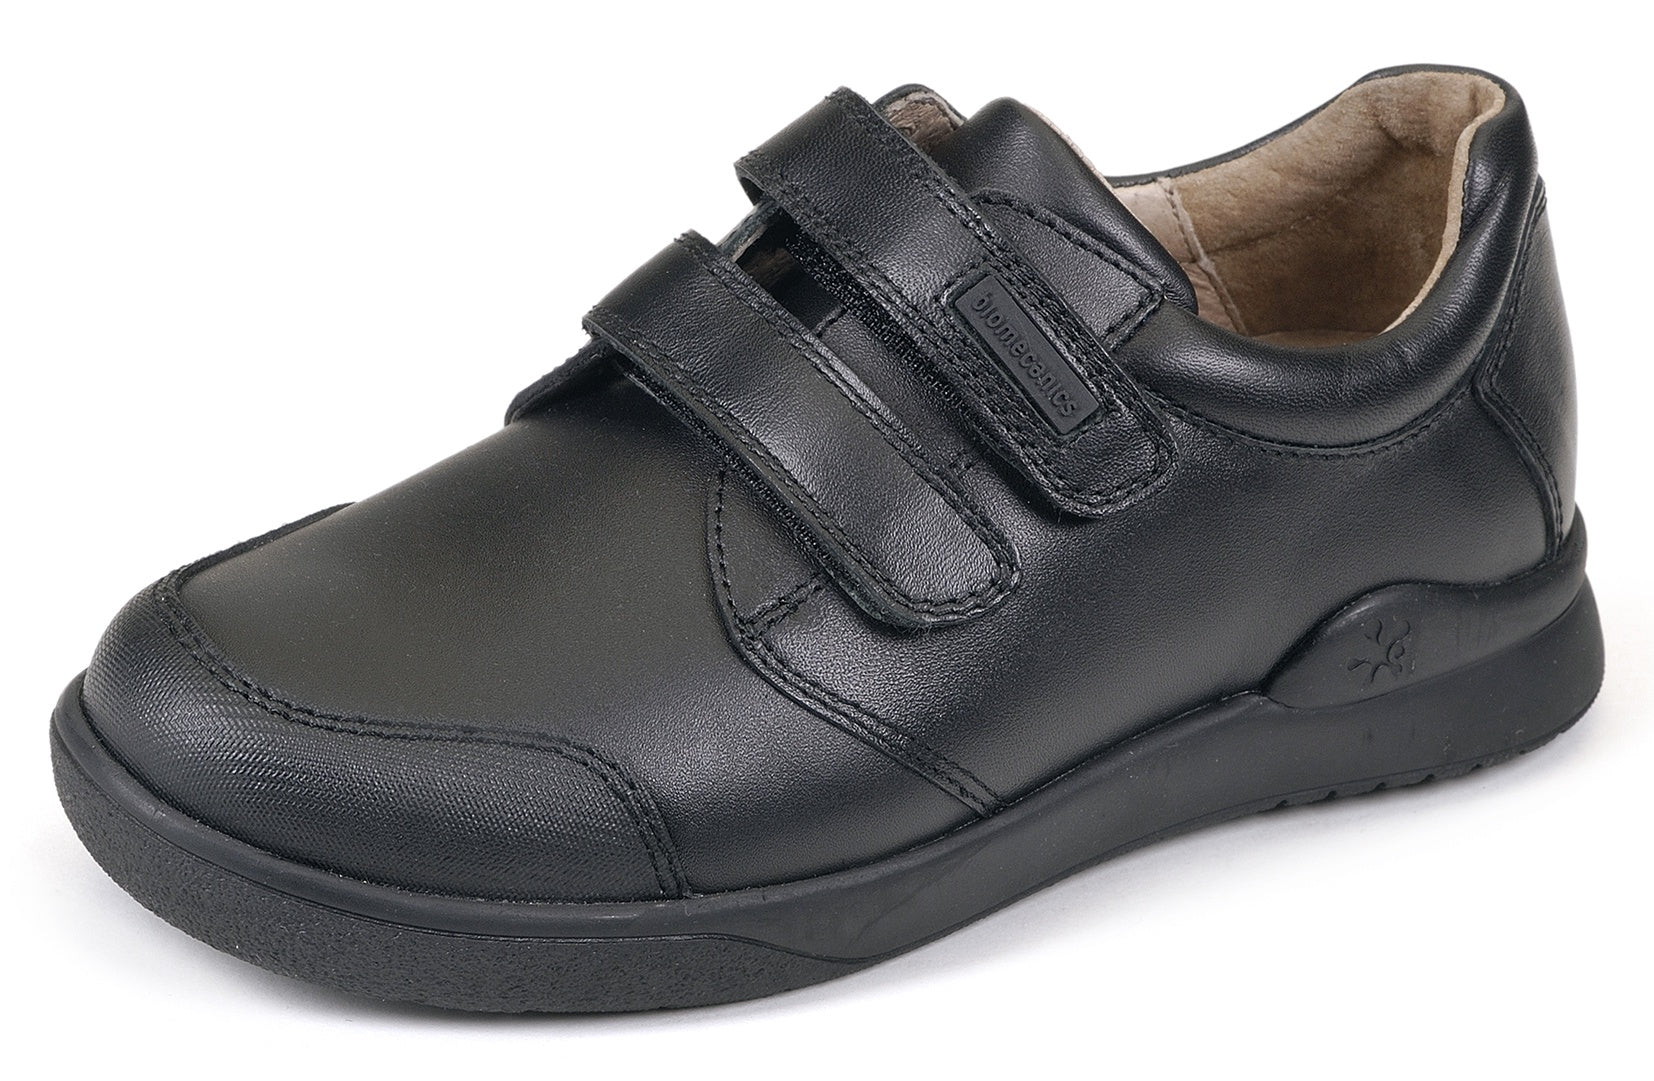 DOUBLE VELCRO BIO SCHOOL SHOE